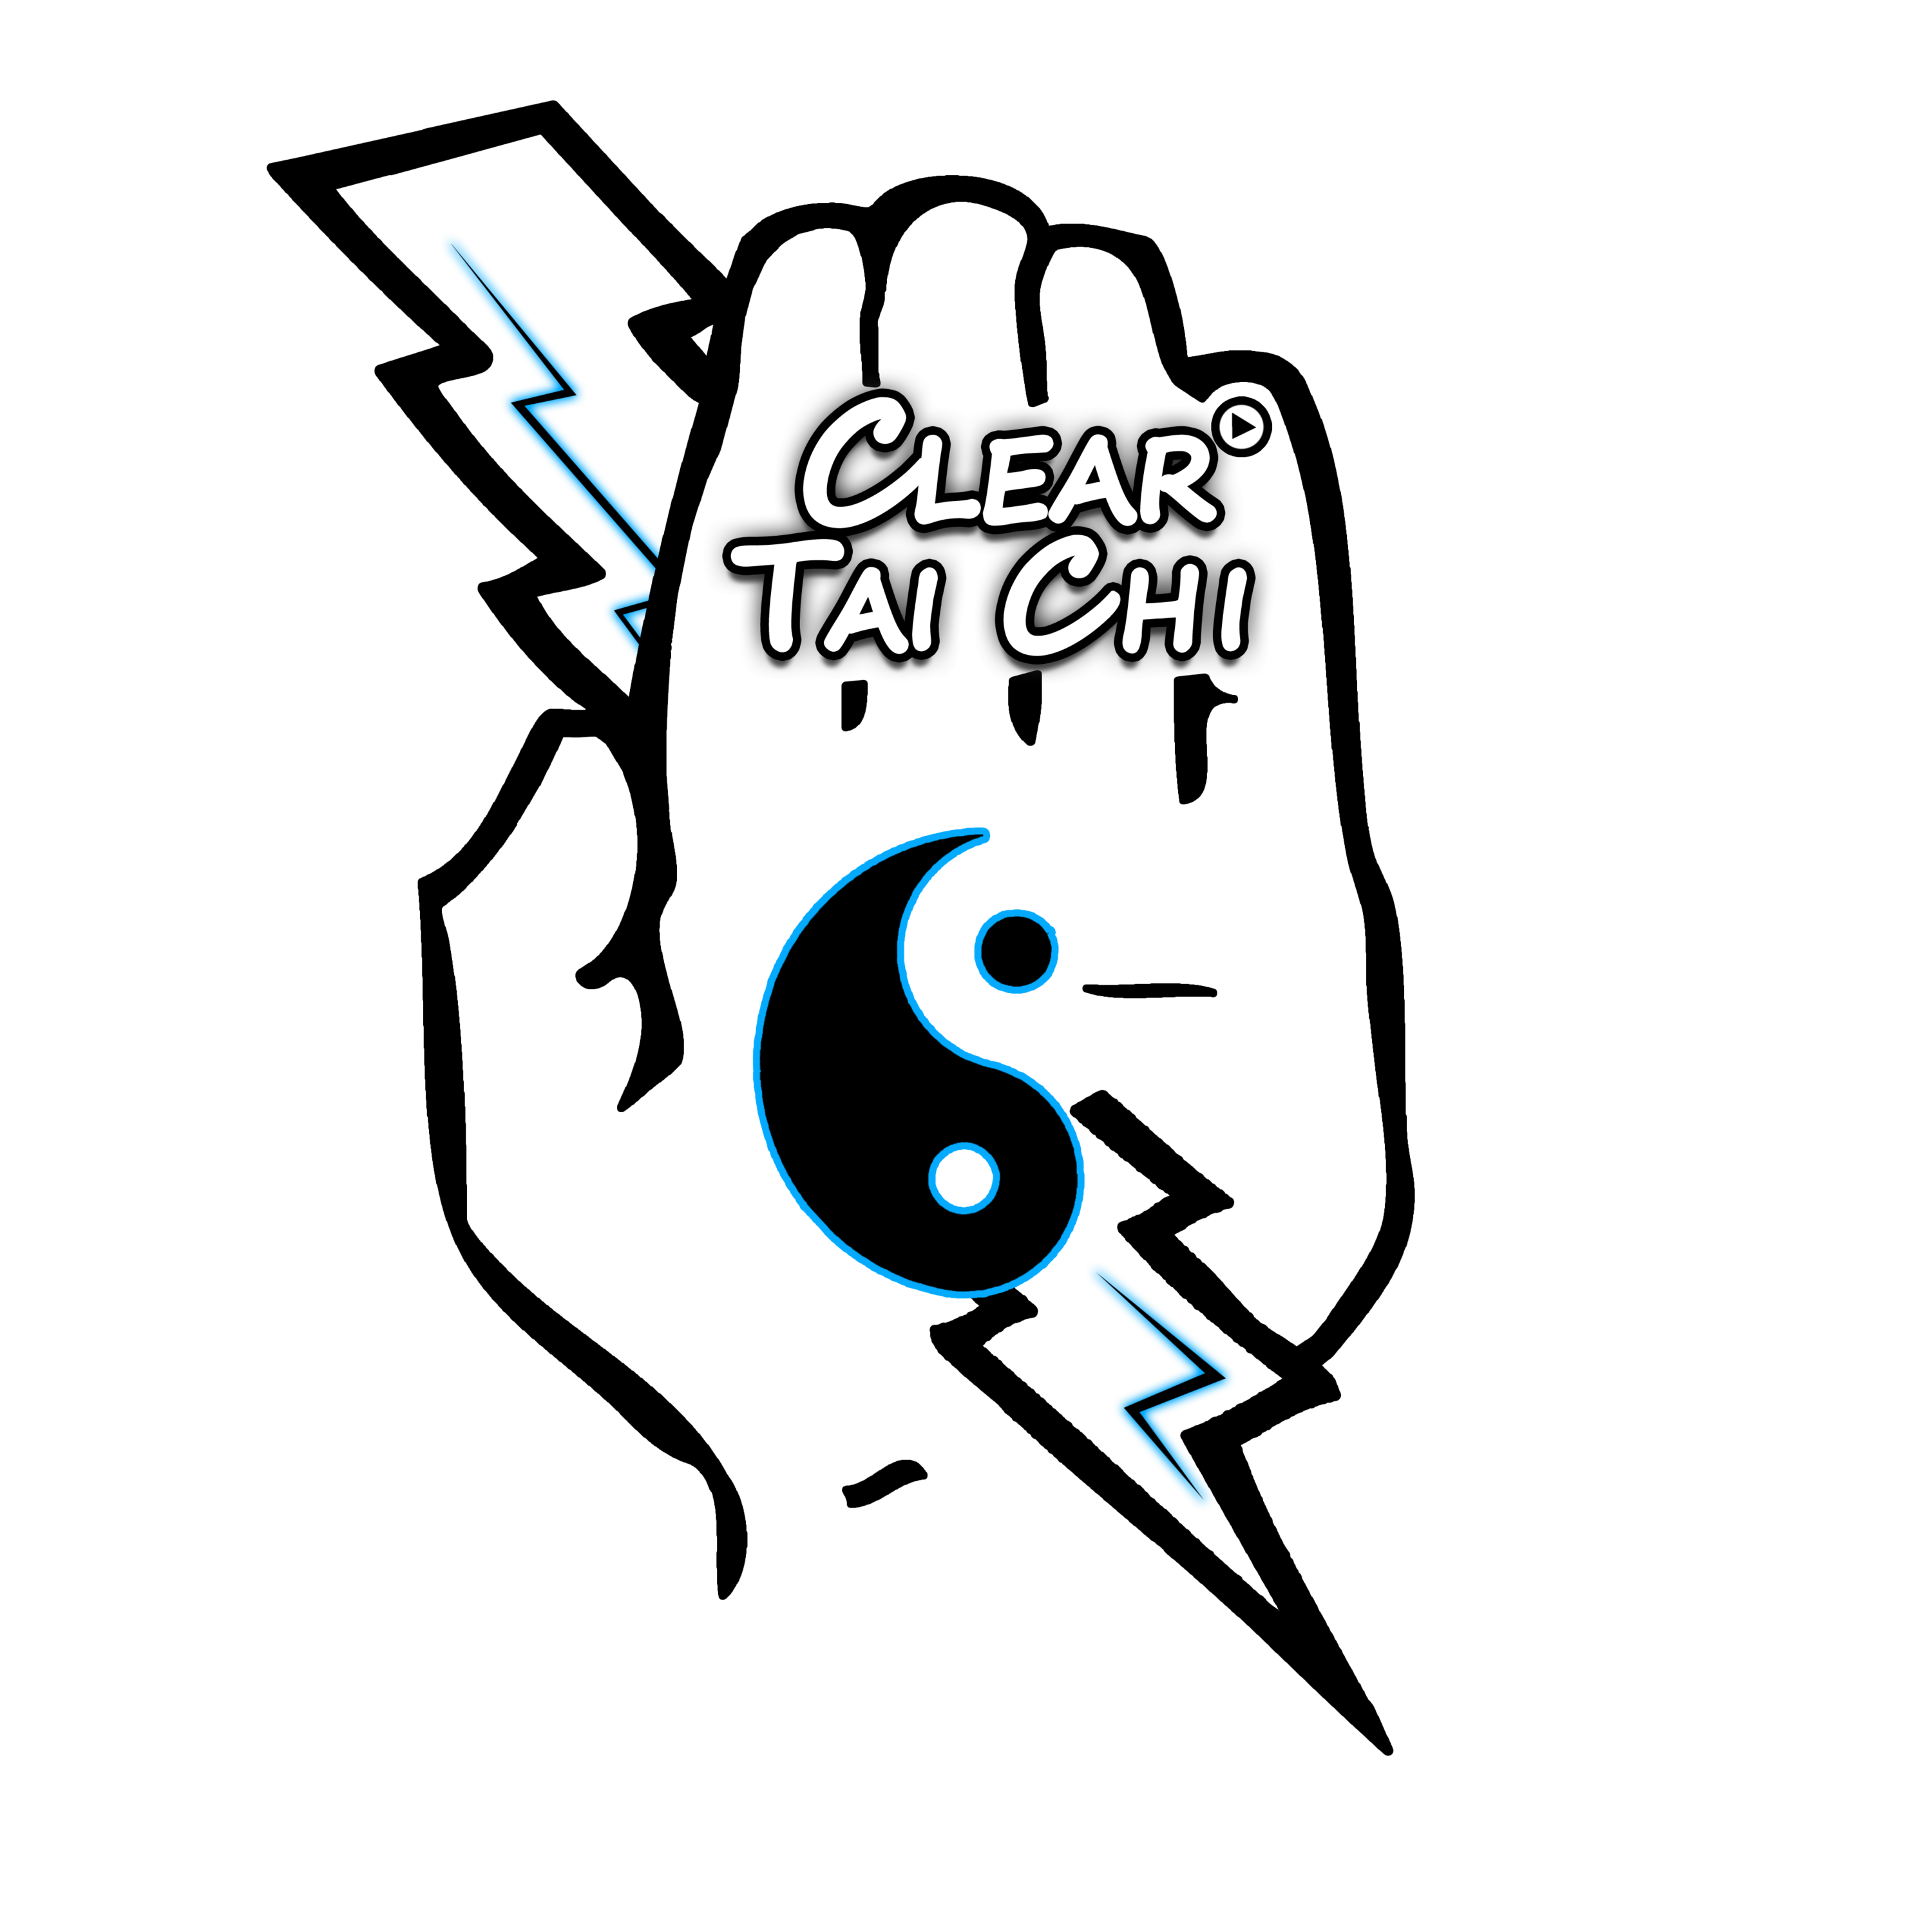 Clear's Tai Chi